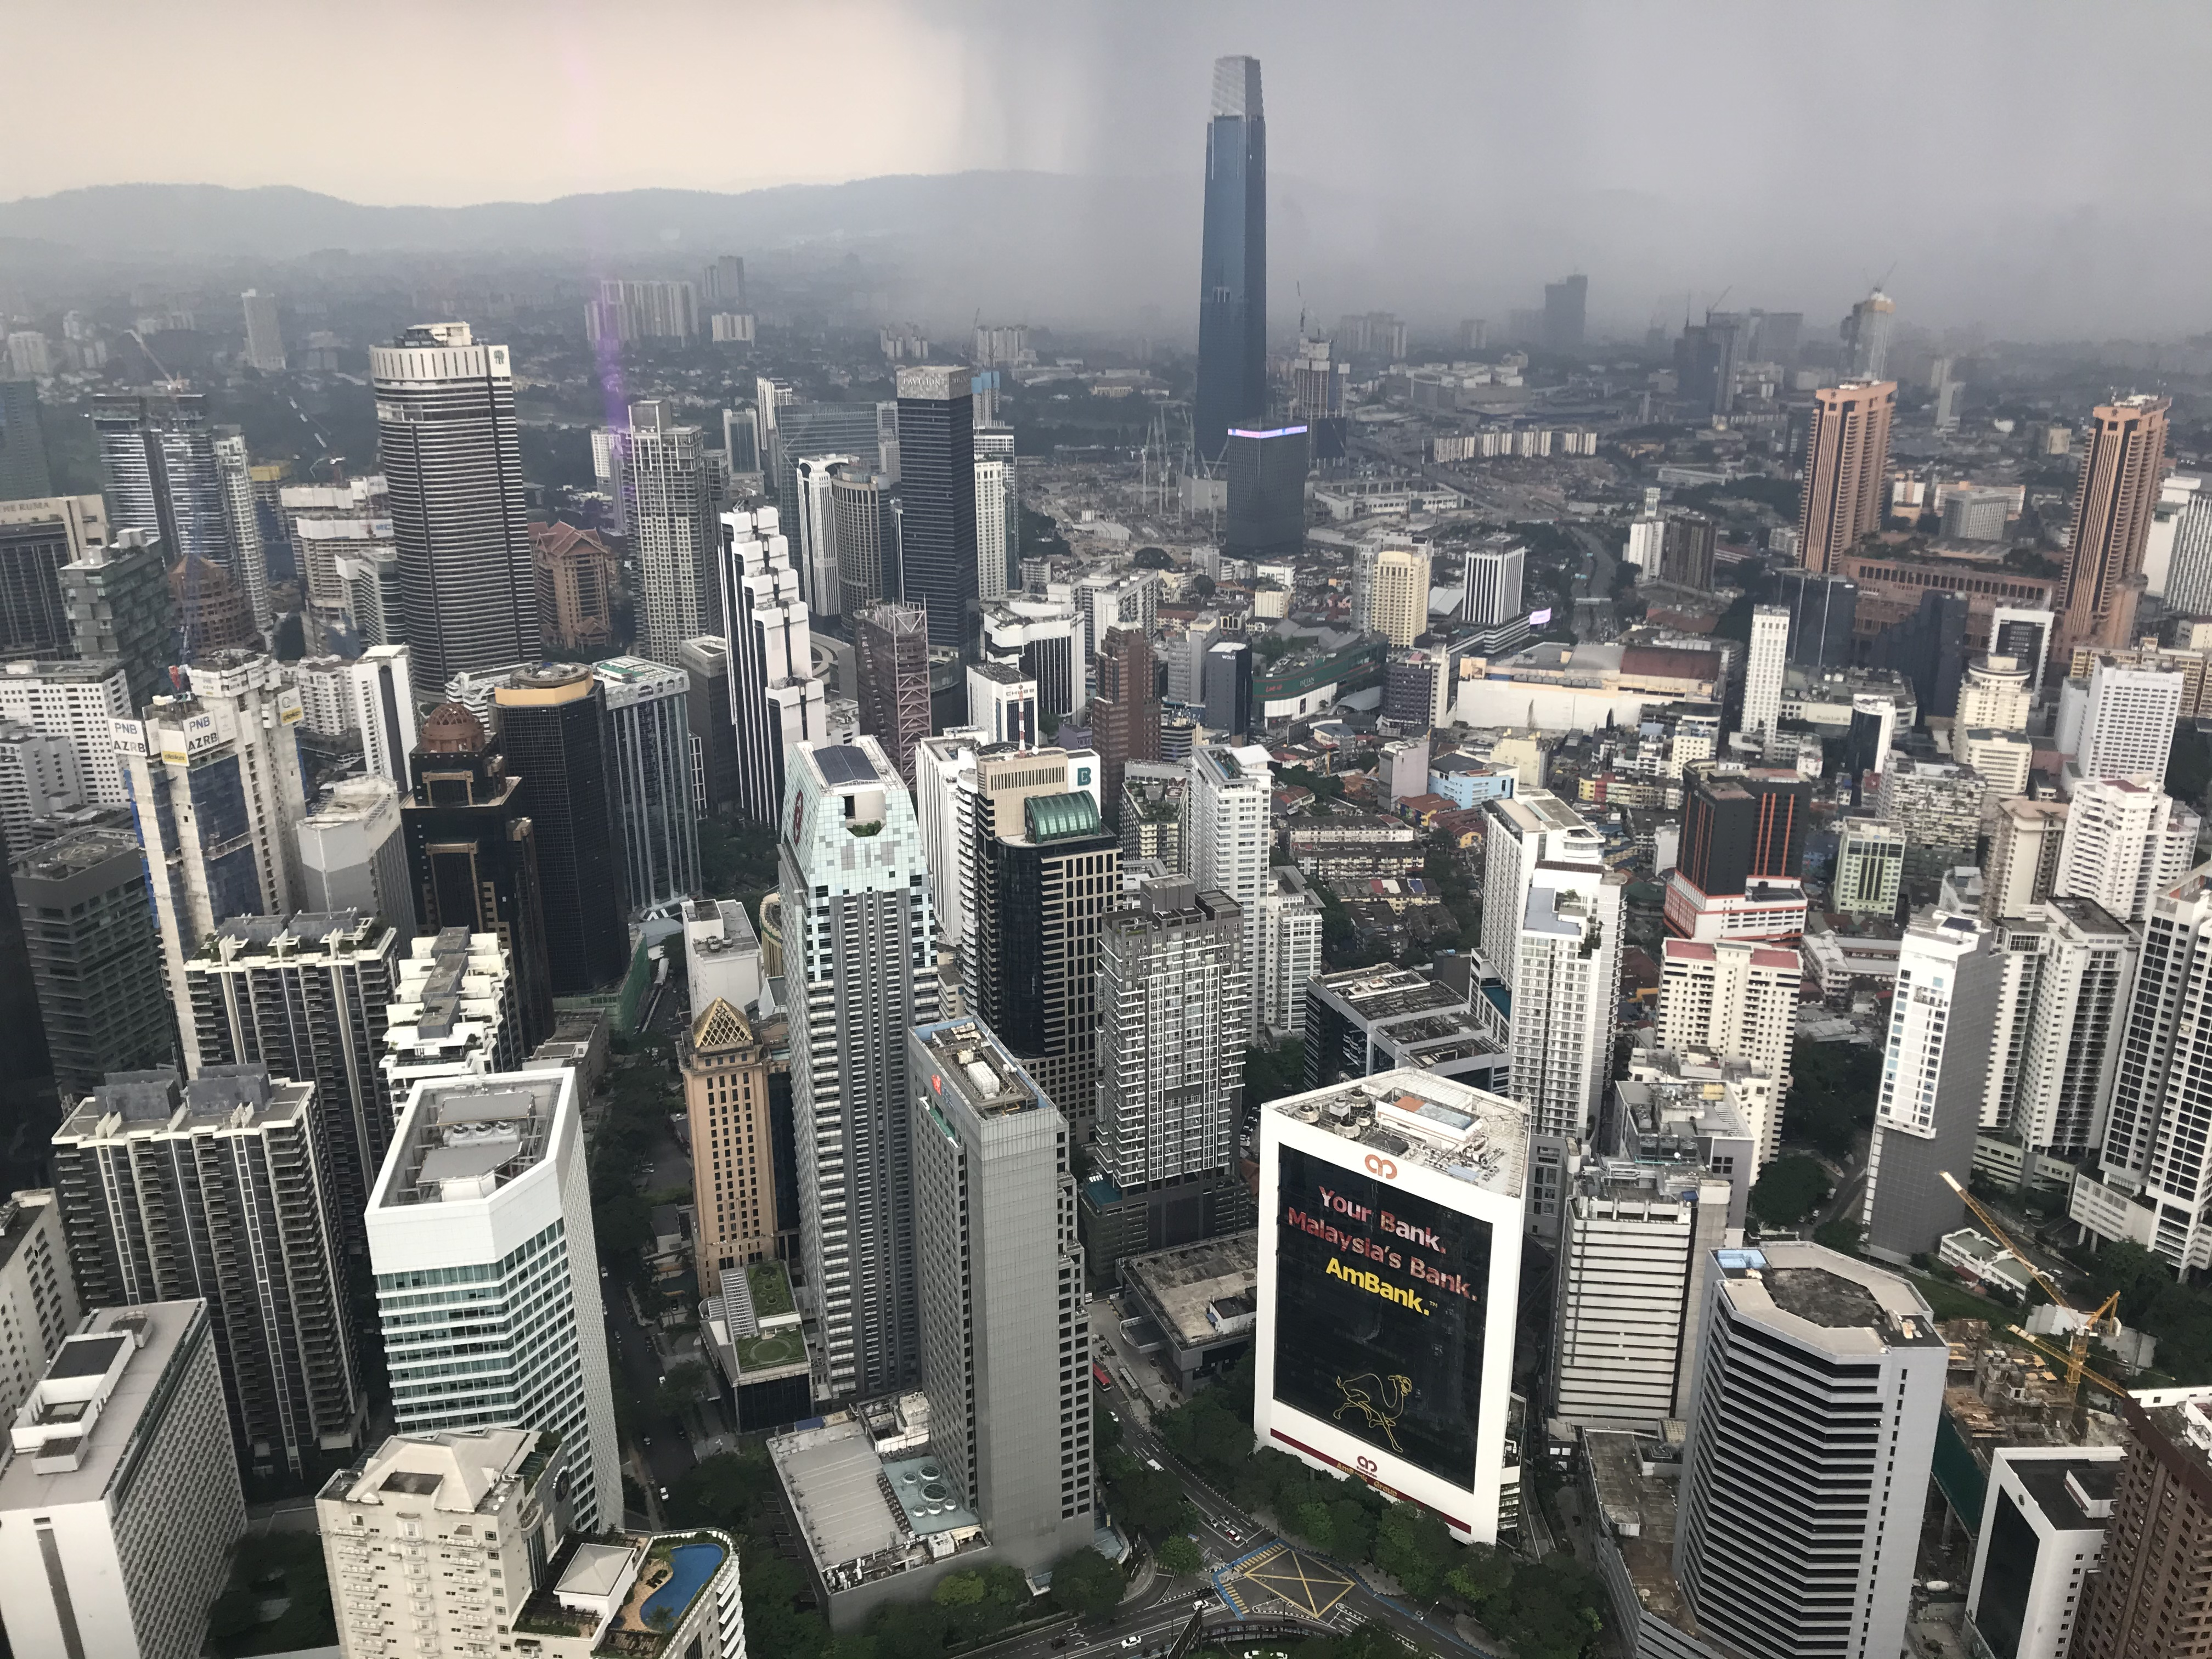 Kuala Lumpur was ranked 10th among cities to have most buildings above 100 metres with a combined height of 34,035 metres from its 244 high rise buildings[1]. As of 2019, the city of Kuala Lumpur has over 1,900[2] completed high-rises building, of which over 700 are buildings standing taller than 100 m (328 ft); 170 buildings over 150 m (492 ft), 42 buildings over 200 m (656 ft) and 5 buildings over 300 m (984 ft), the majority of it being located in the KLCC, Golden Triangle, Mont' Kiara and Old Downtown[3]. The tallest building in Kuala Lumpur is Petronas Twin Towers were the tallestbuilding